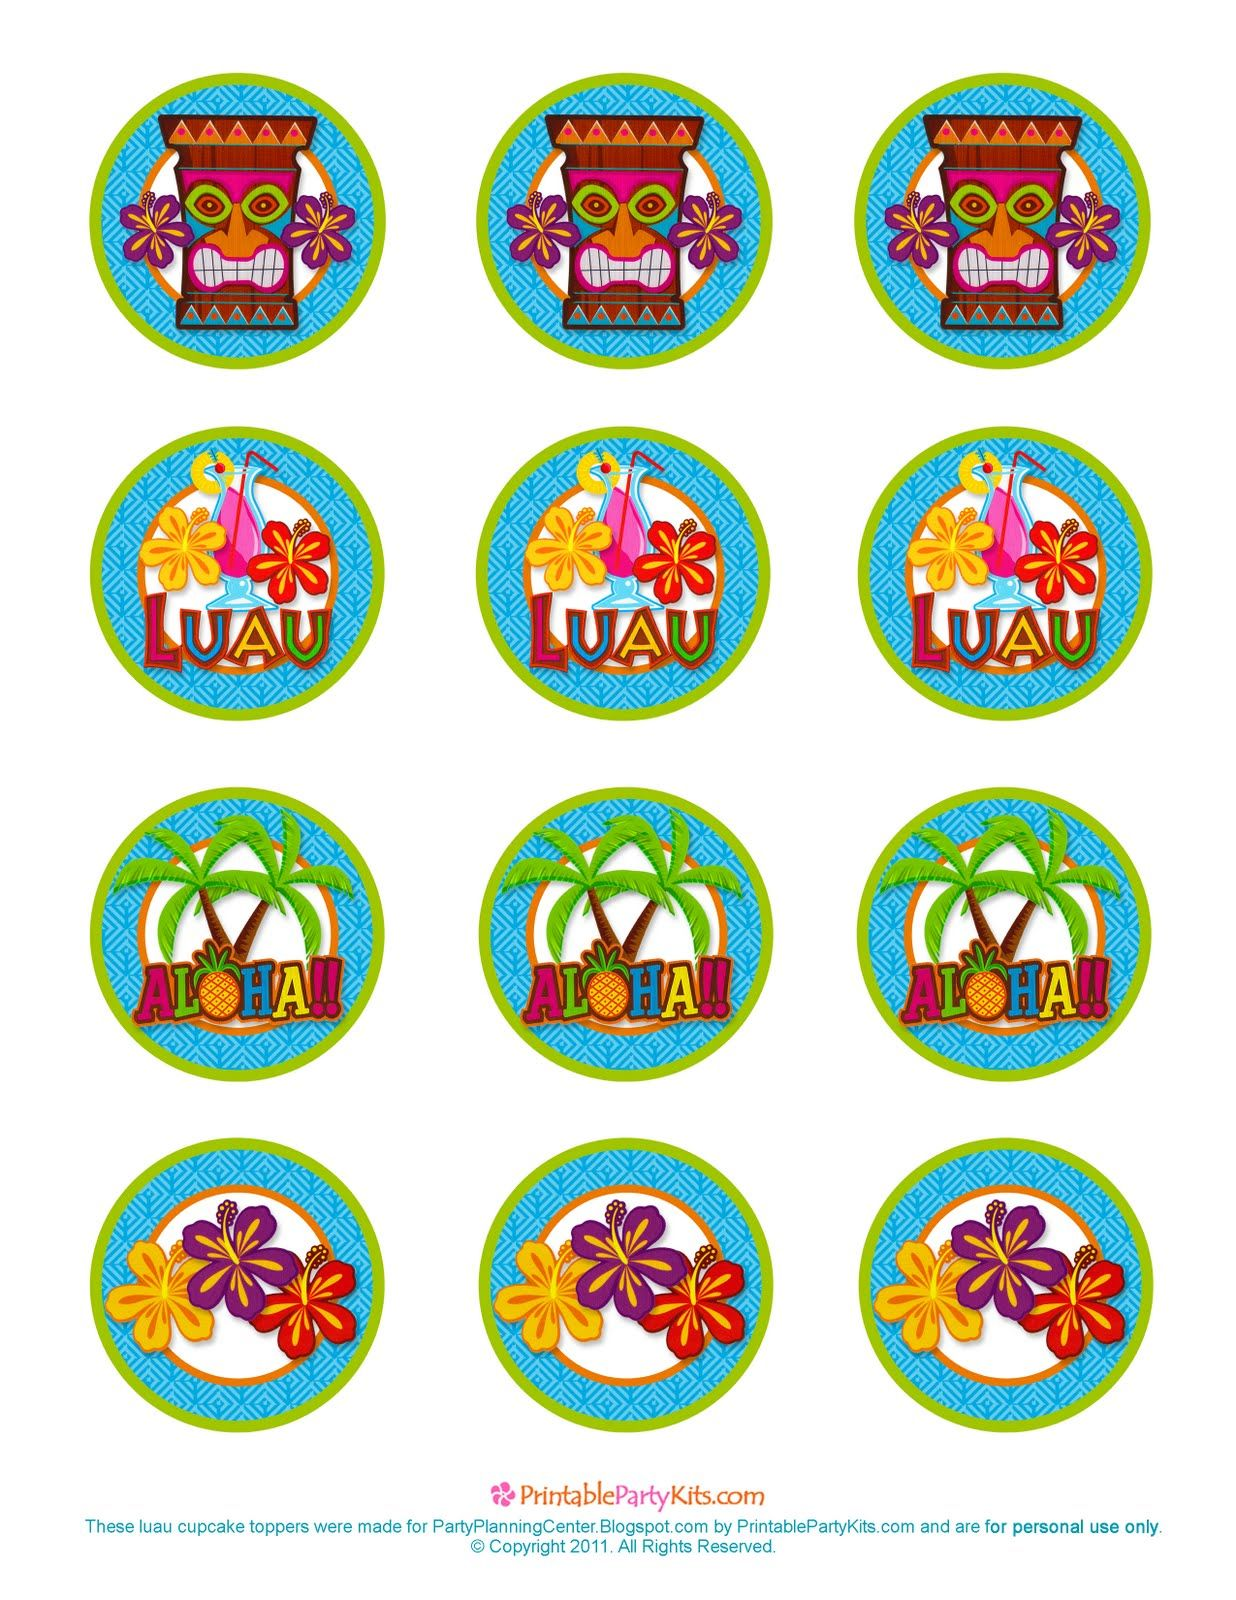 67 best Cupcake Toppers images on Pinterest